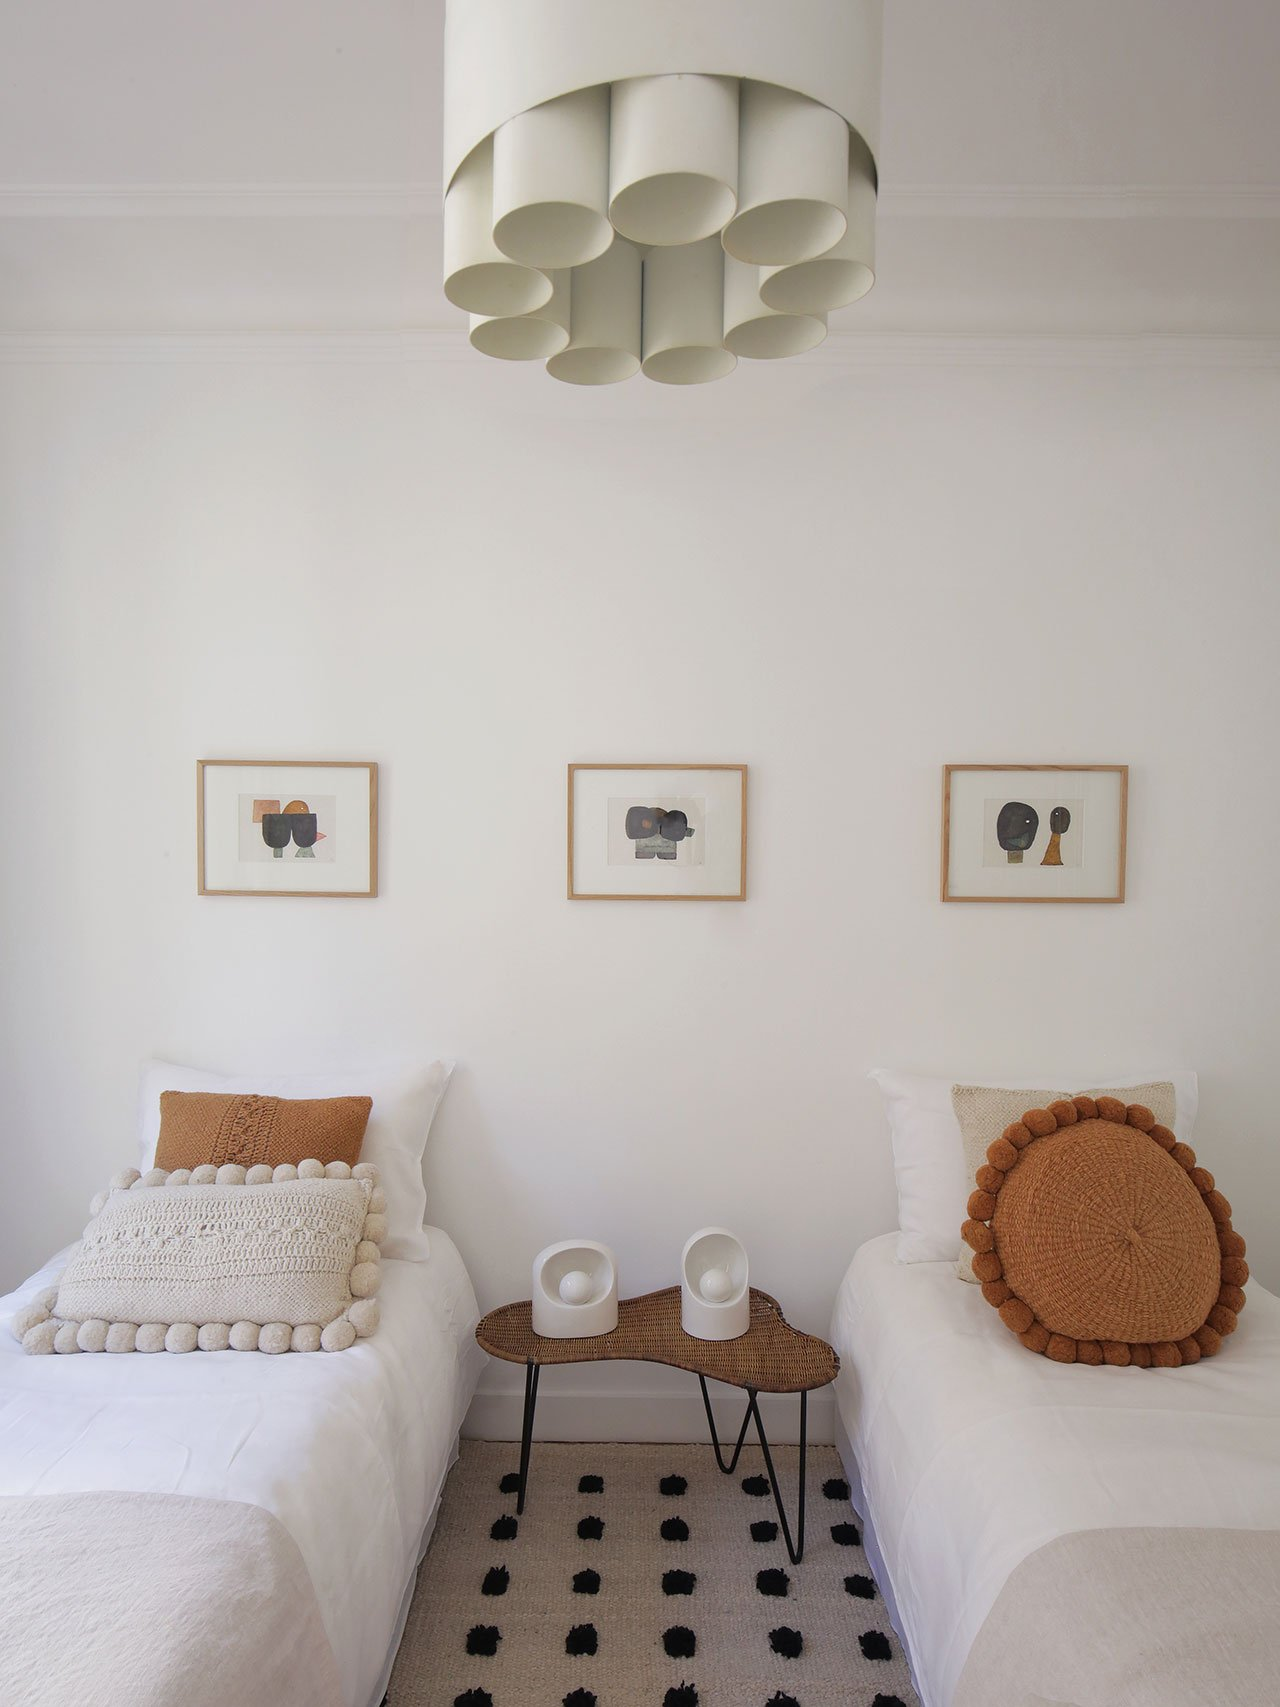 Pendant lightby Jo Hammerborg, circa 1970. Table in rattan and ironby Raoul Guys, 1950. White ceramic table lights by Marcello Cuneo, 1970. Photography by Damien de Medeiros.